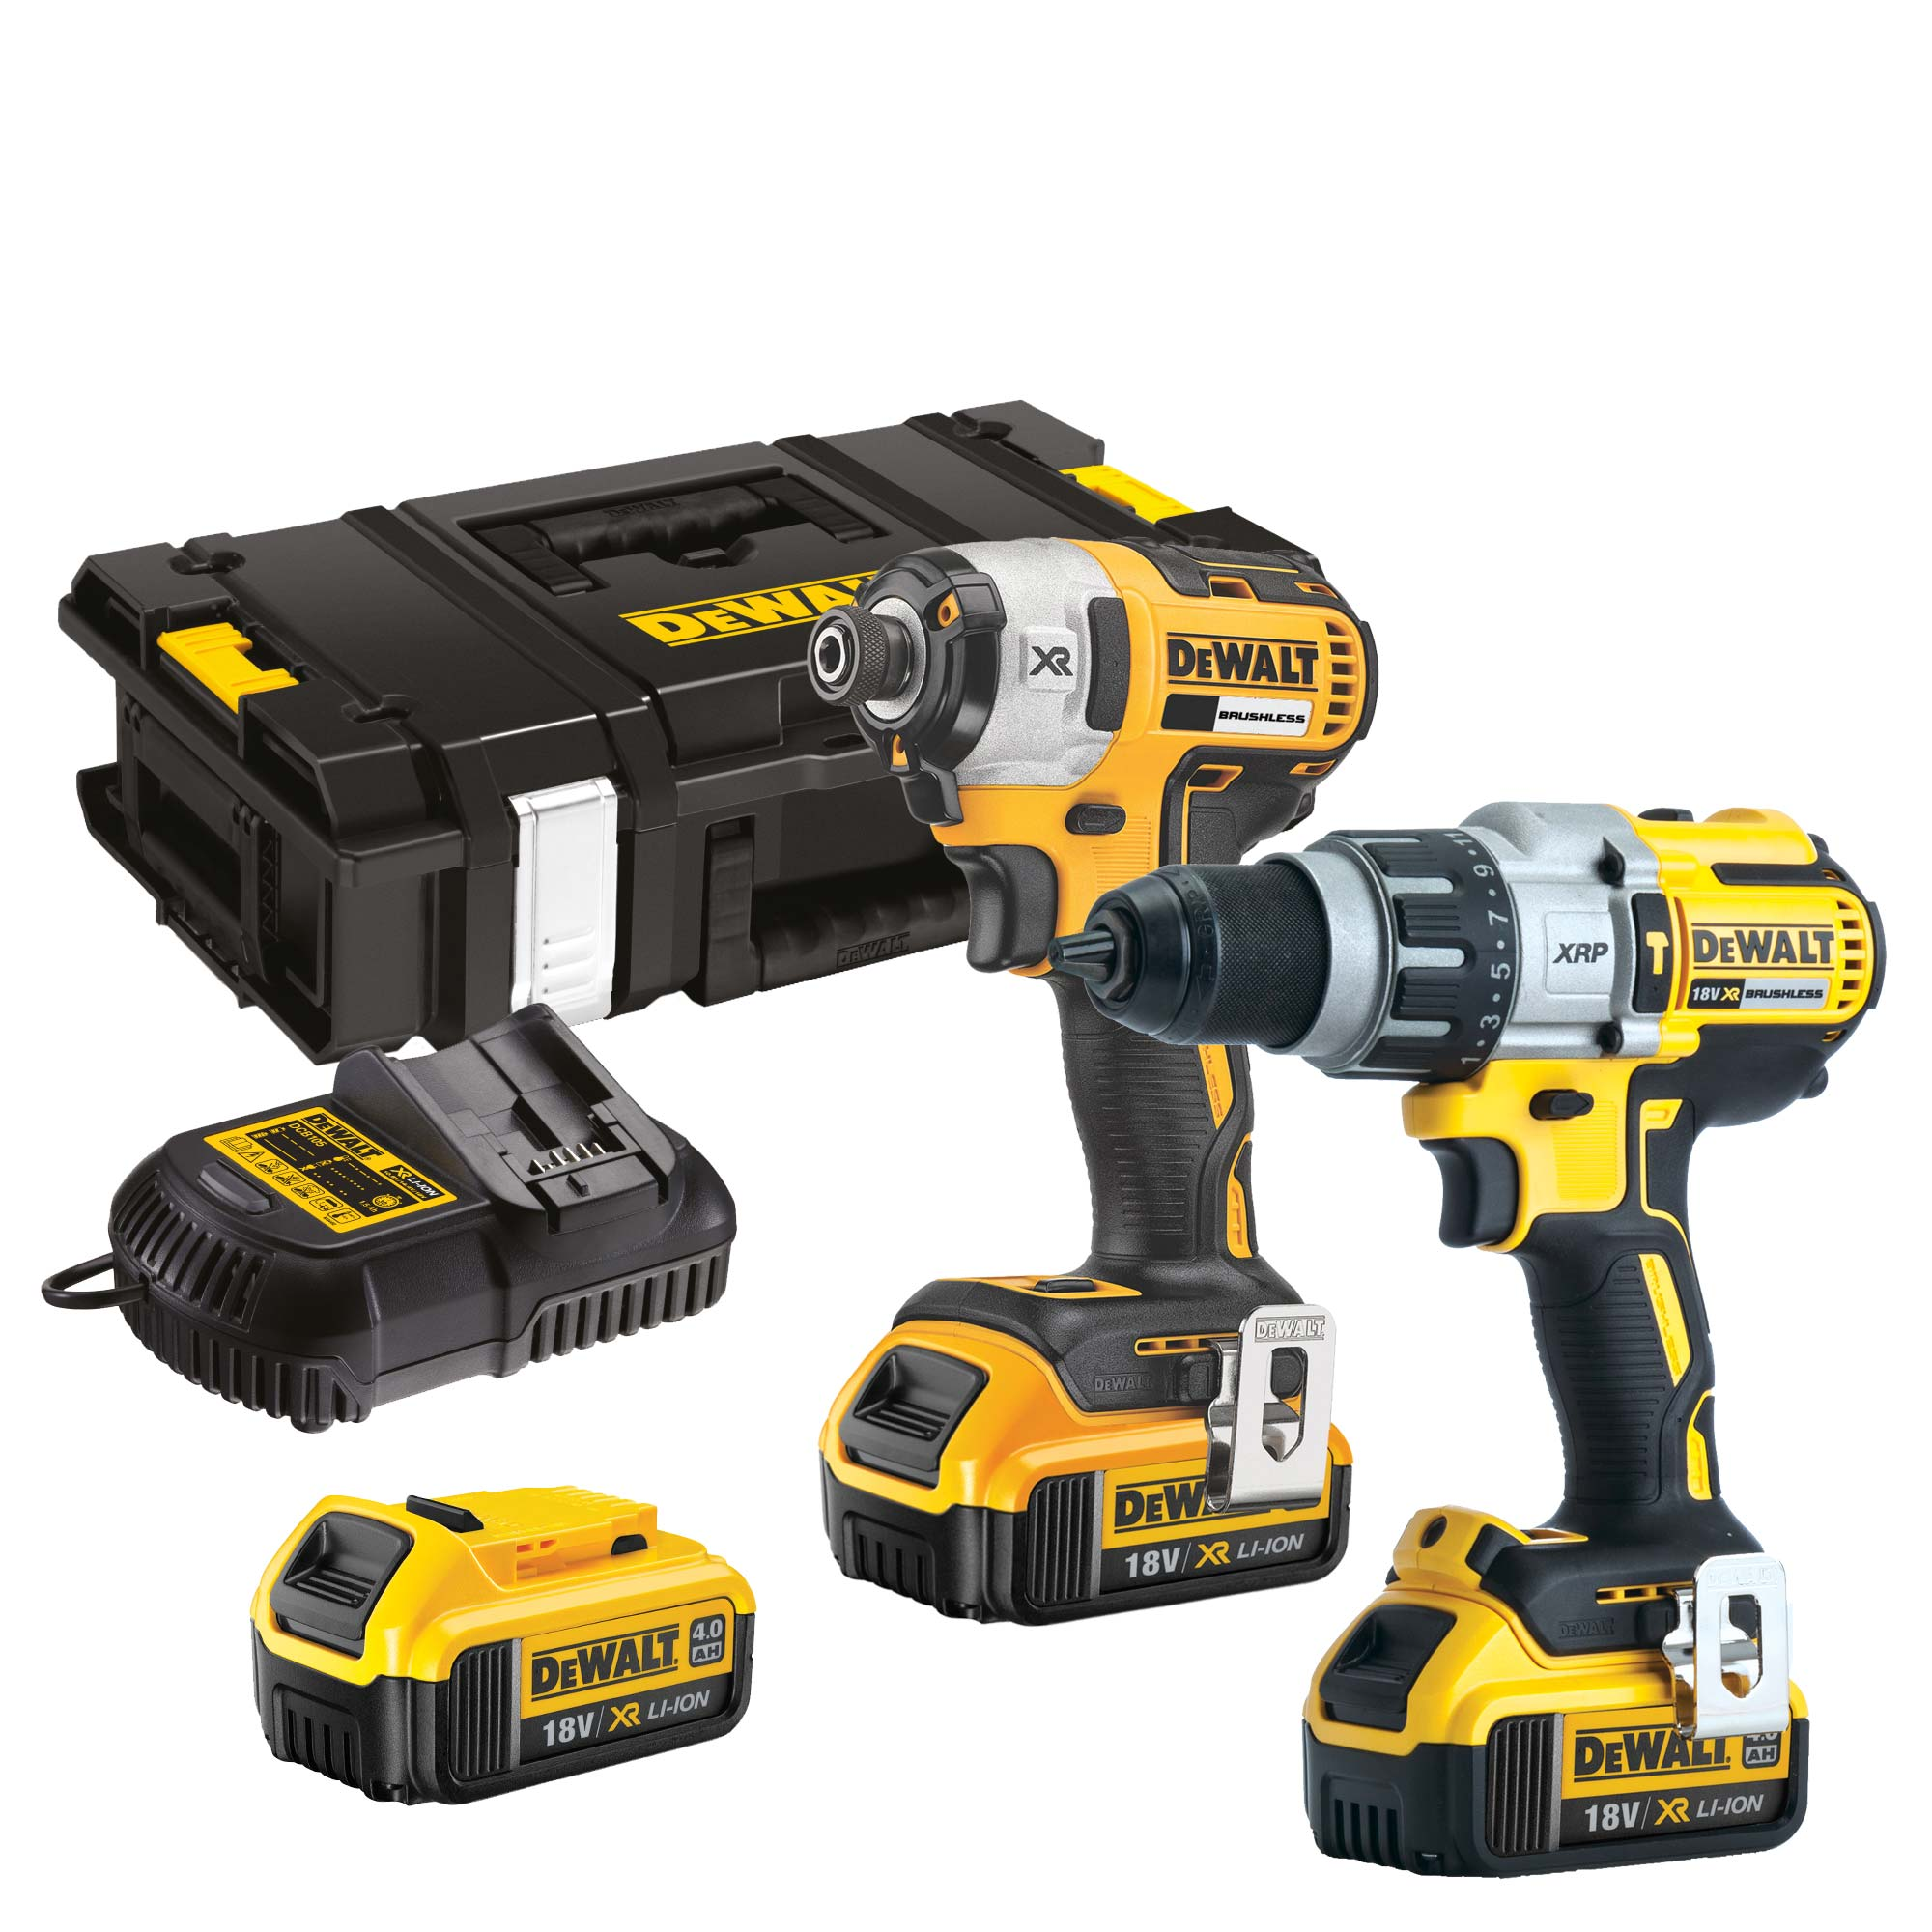 dewalt dck276m3 dewalt 18v xr 4 0ah li ion brushless 2. Black Bedroom Furniture Sets. Home Design Ideas